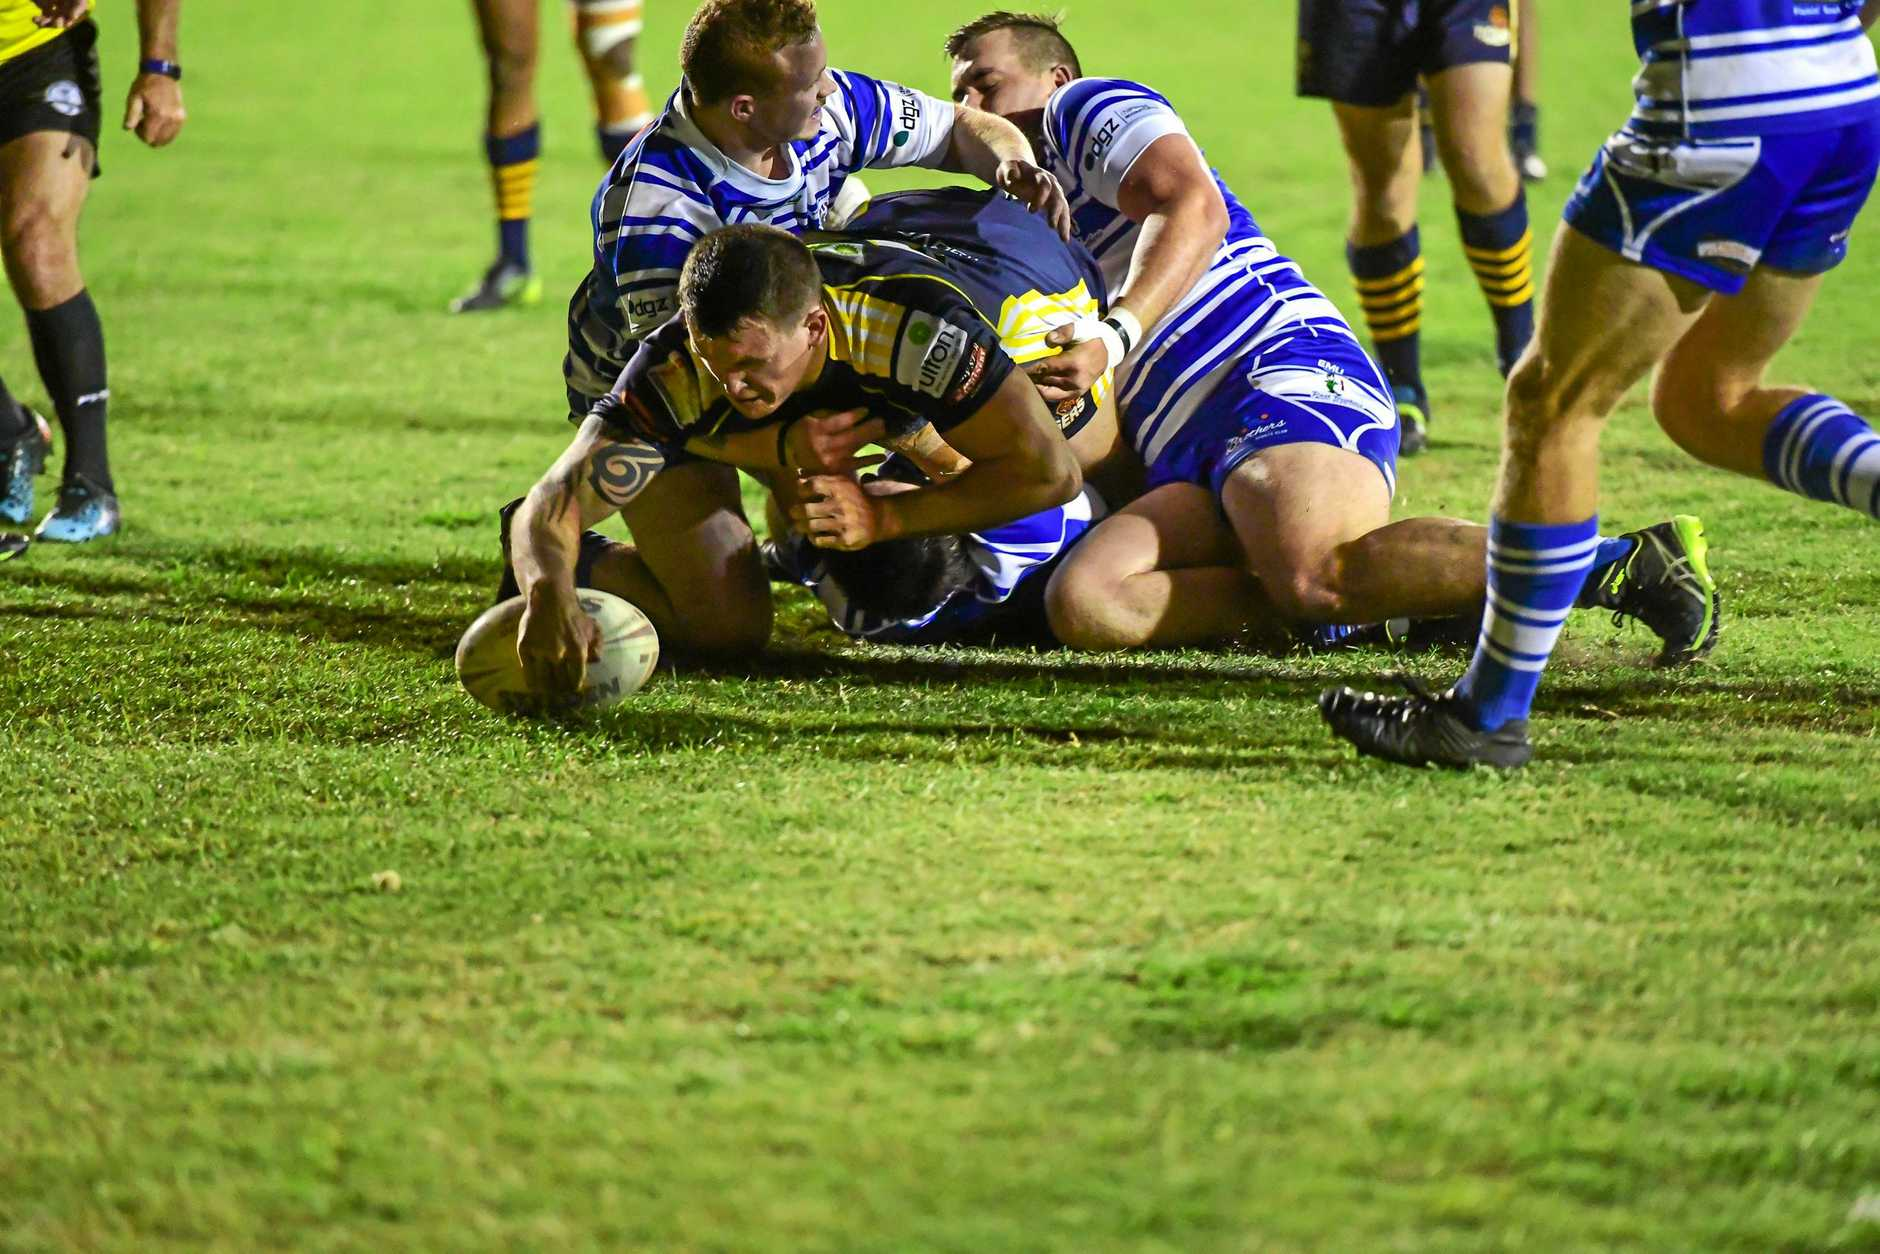 DIVE: The Waves' Reece Maughan crashes through the Brothers' defence to score a try.